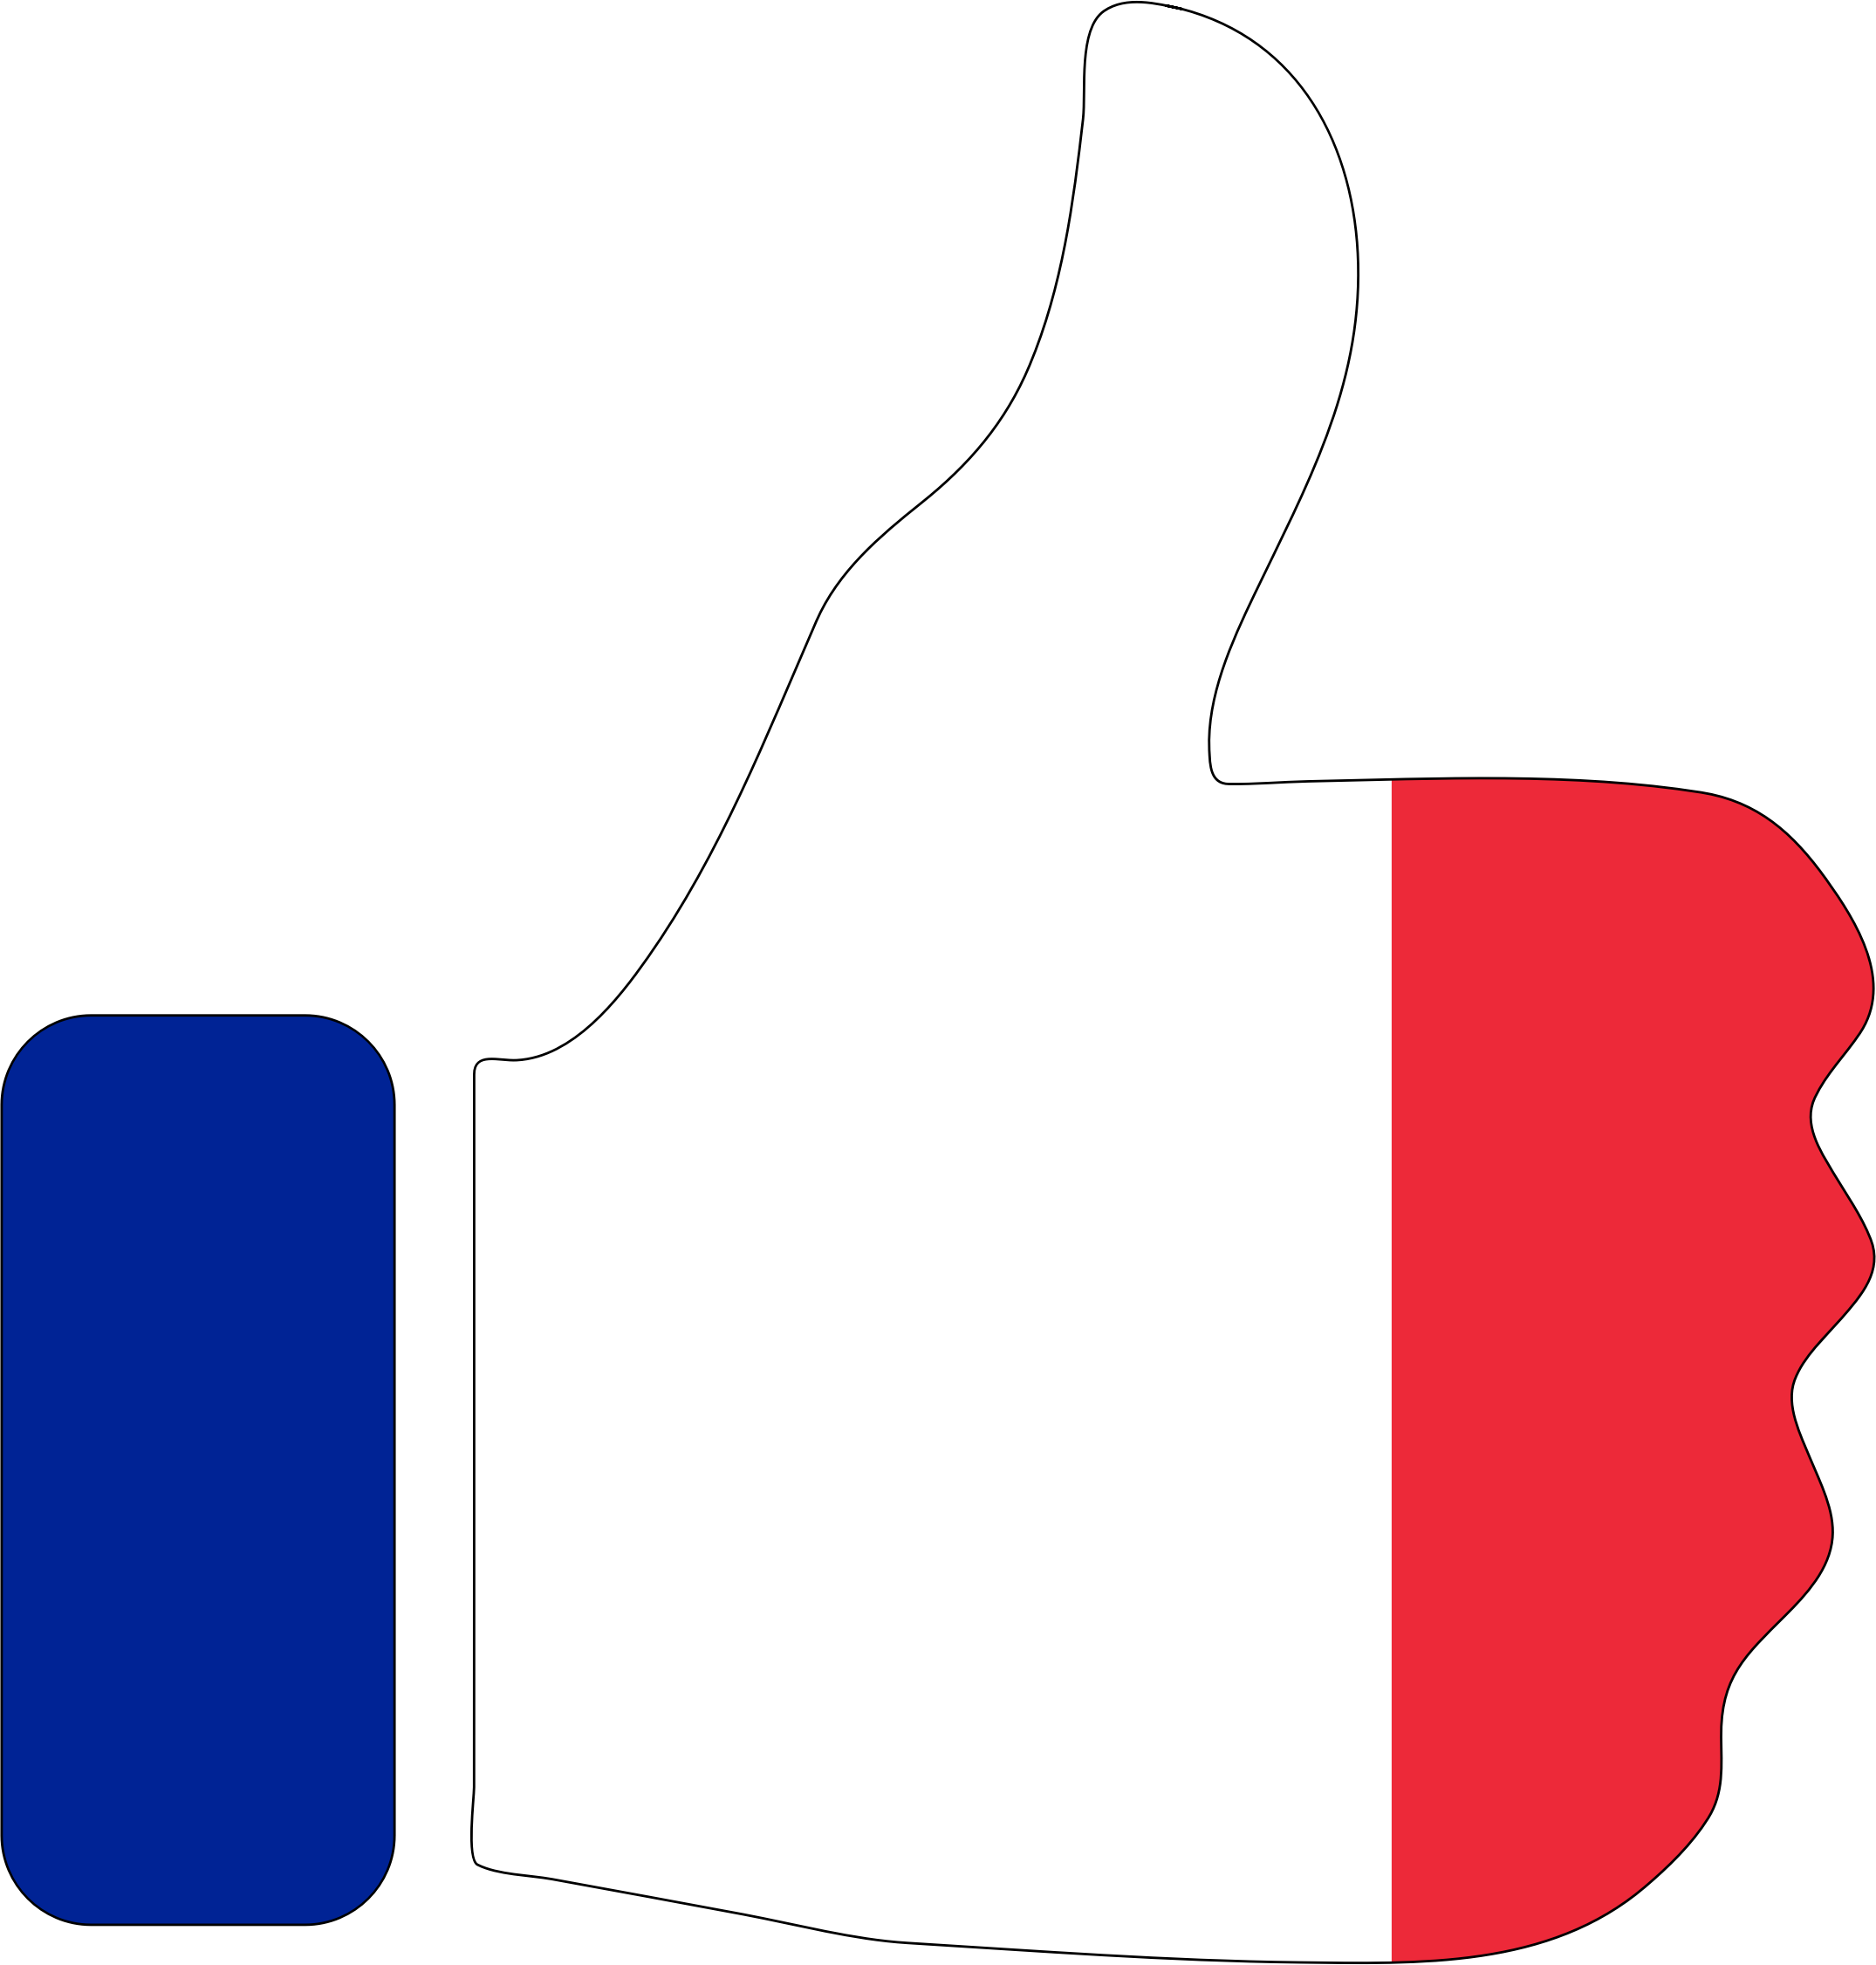 Clipart - Thumbs Up France With Stroke